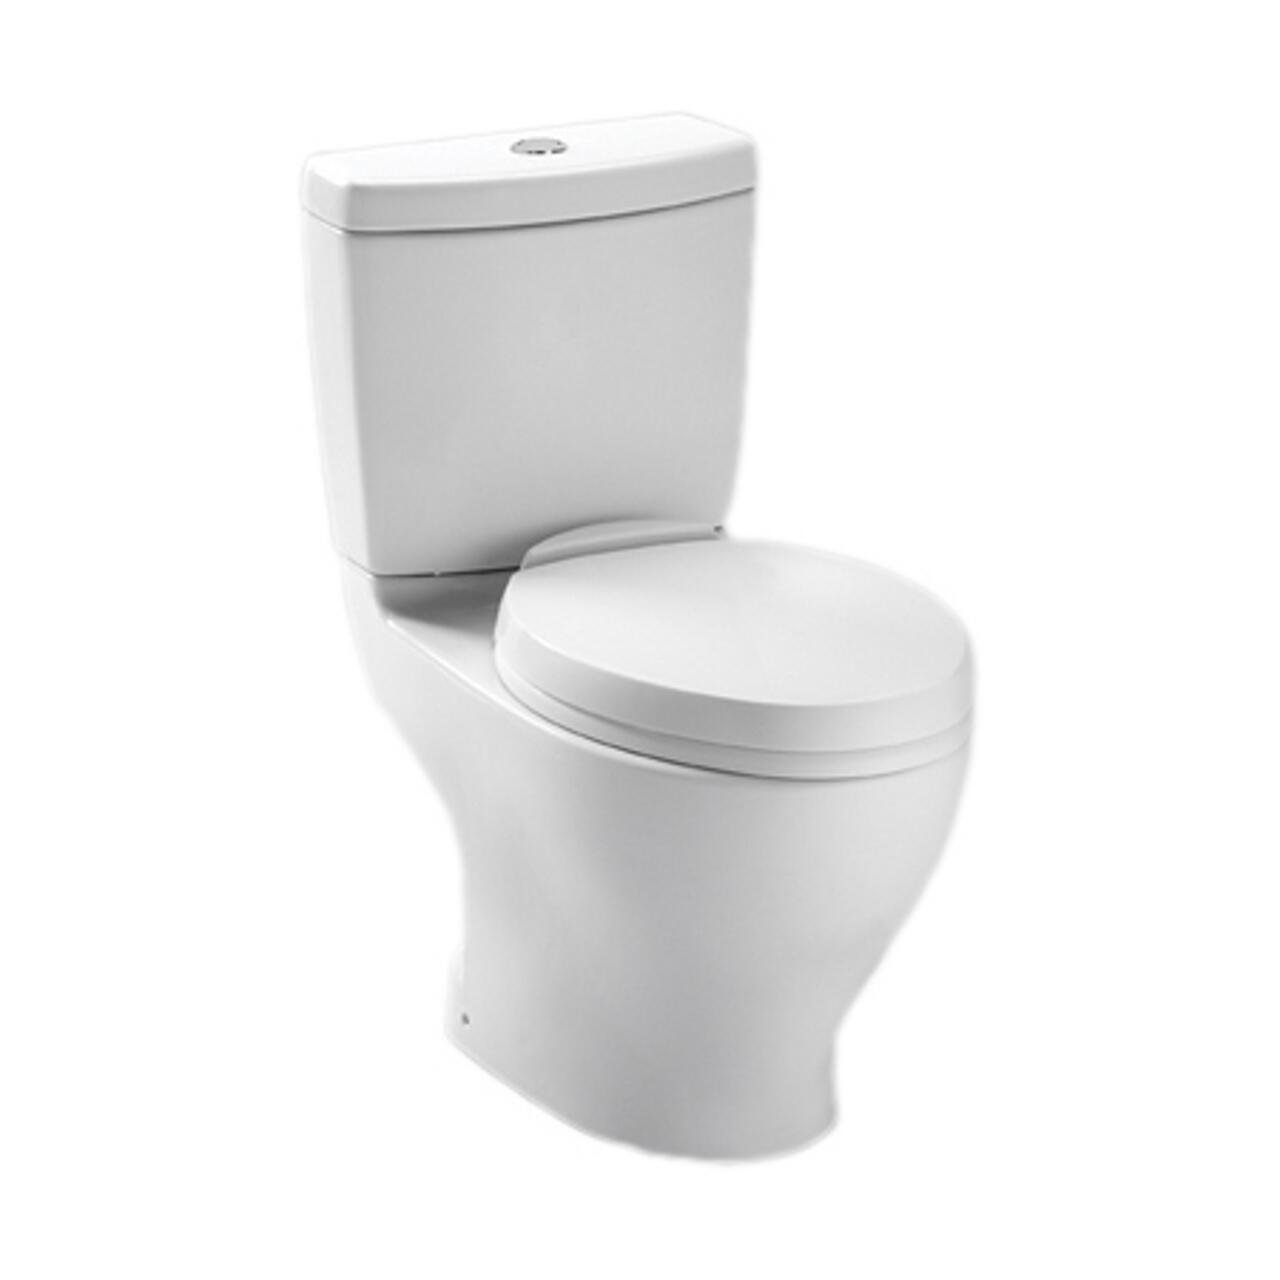 Cheap Toto 10 Inch Rough In Toilet Find Toto 10 Inch Rough In